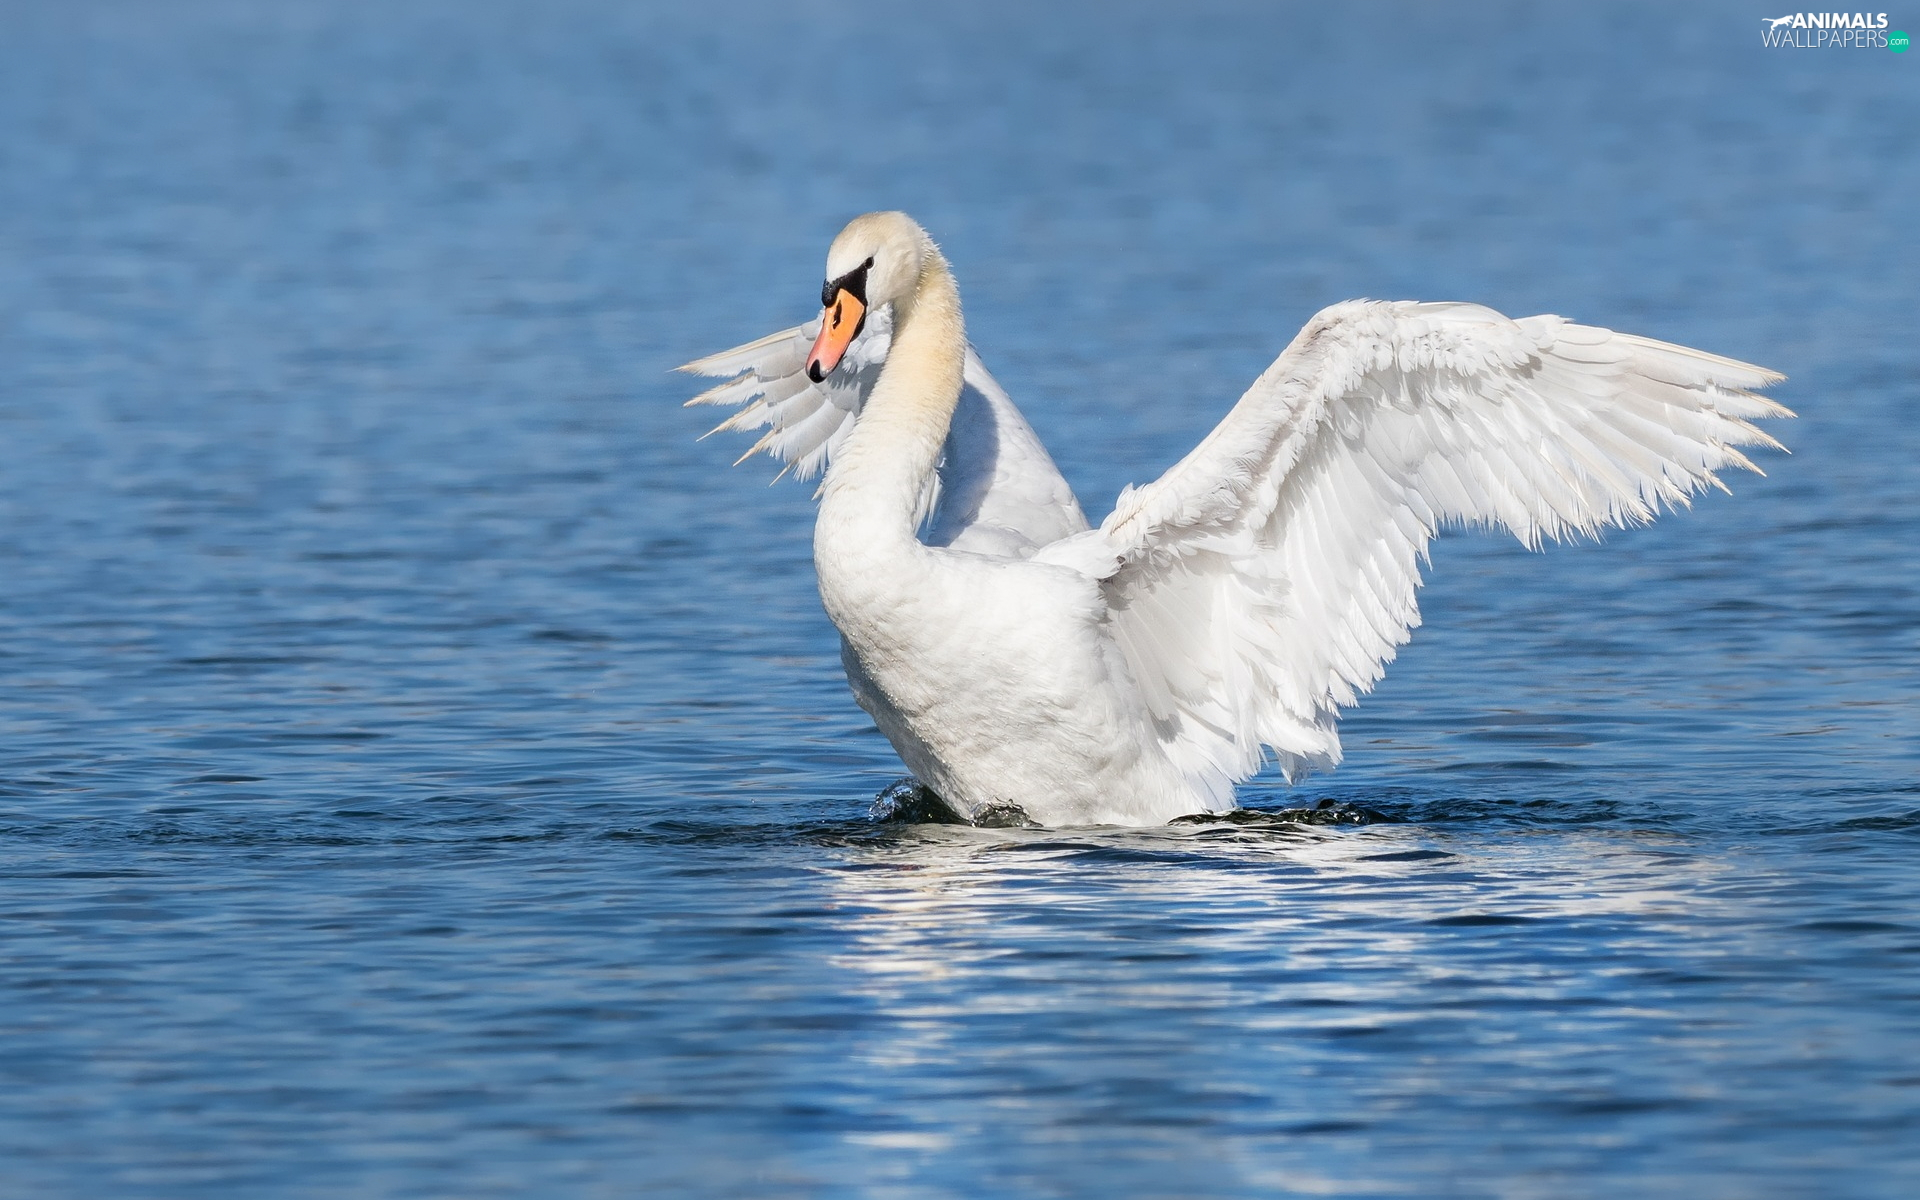 Swans, White, wings, water, spread, Bird